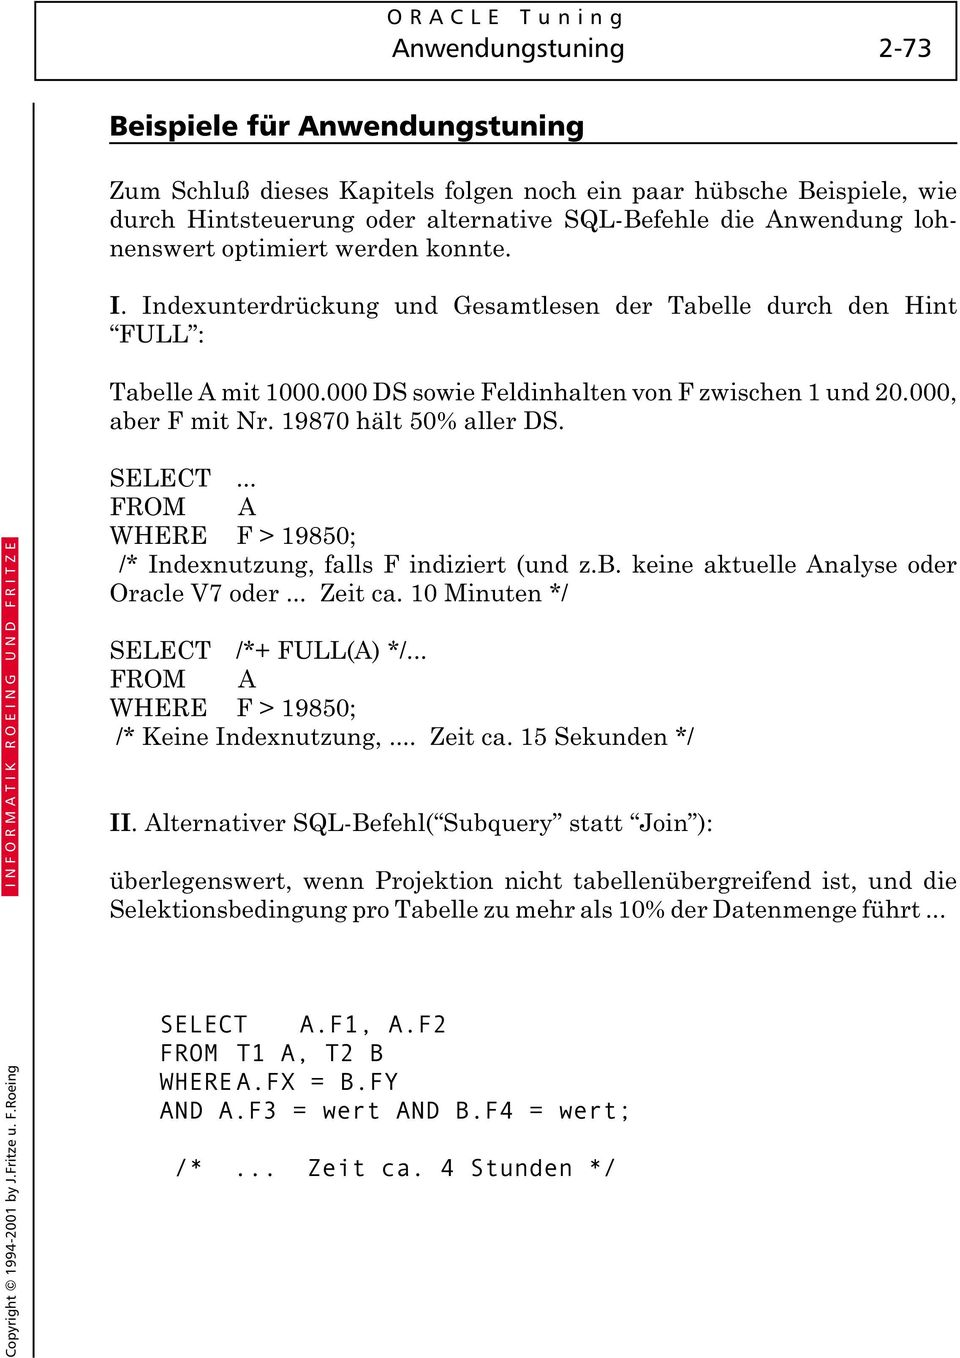 19870 hält 50% aller DS. SELECT... FROM A WHERE F > 19850; /* Indexnutzung, falls F indiziert (und z.b. keine aktuelle Analyse oder Oracle V7 oder... Zeit ca. 10 Minuten */ SELECT /*+ FULL(A) */.